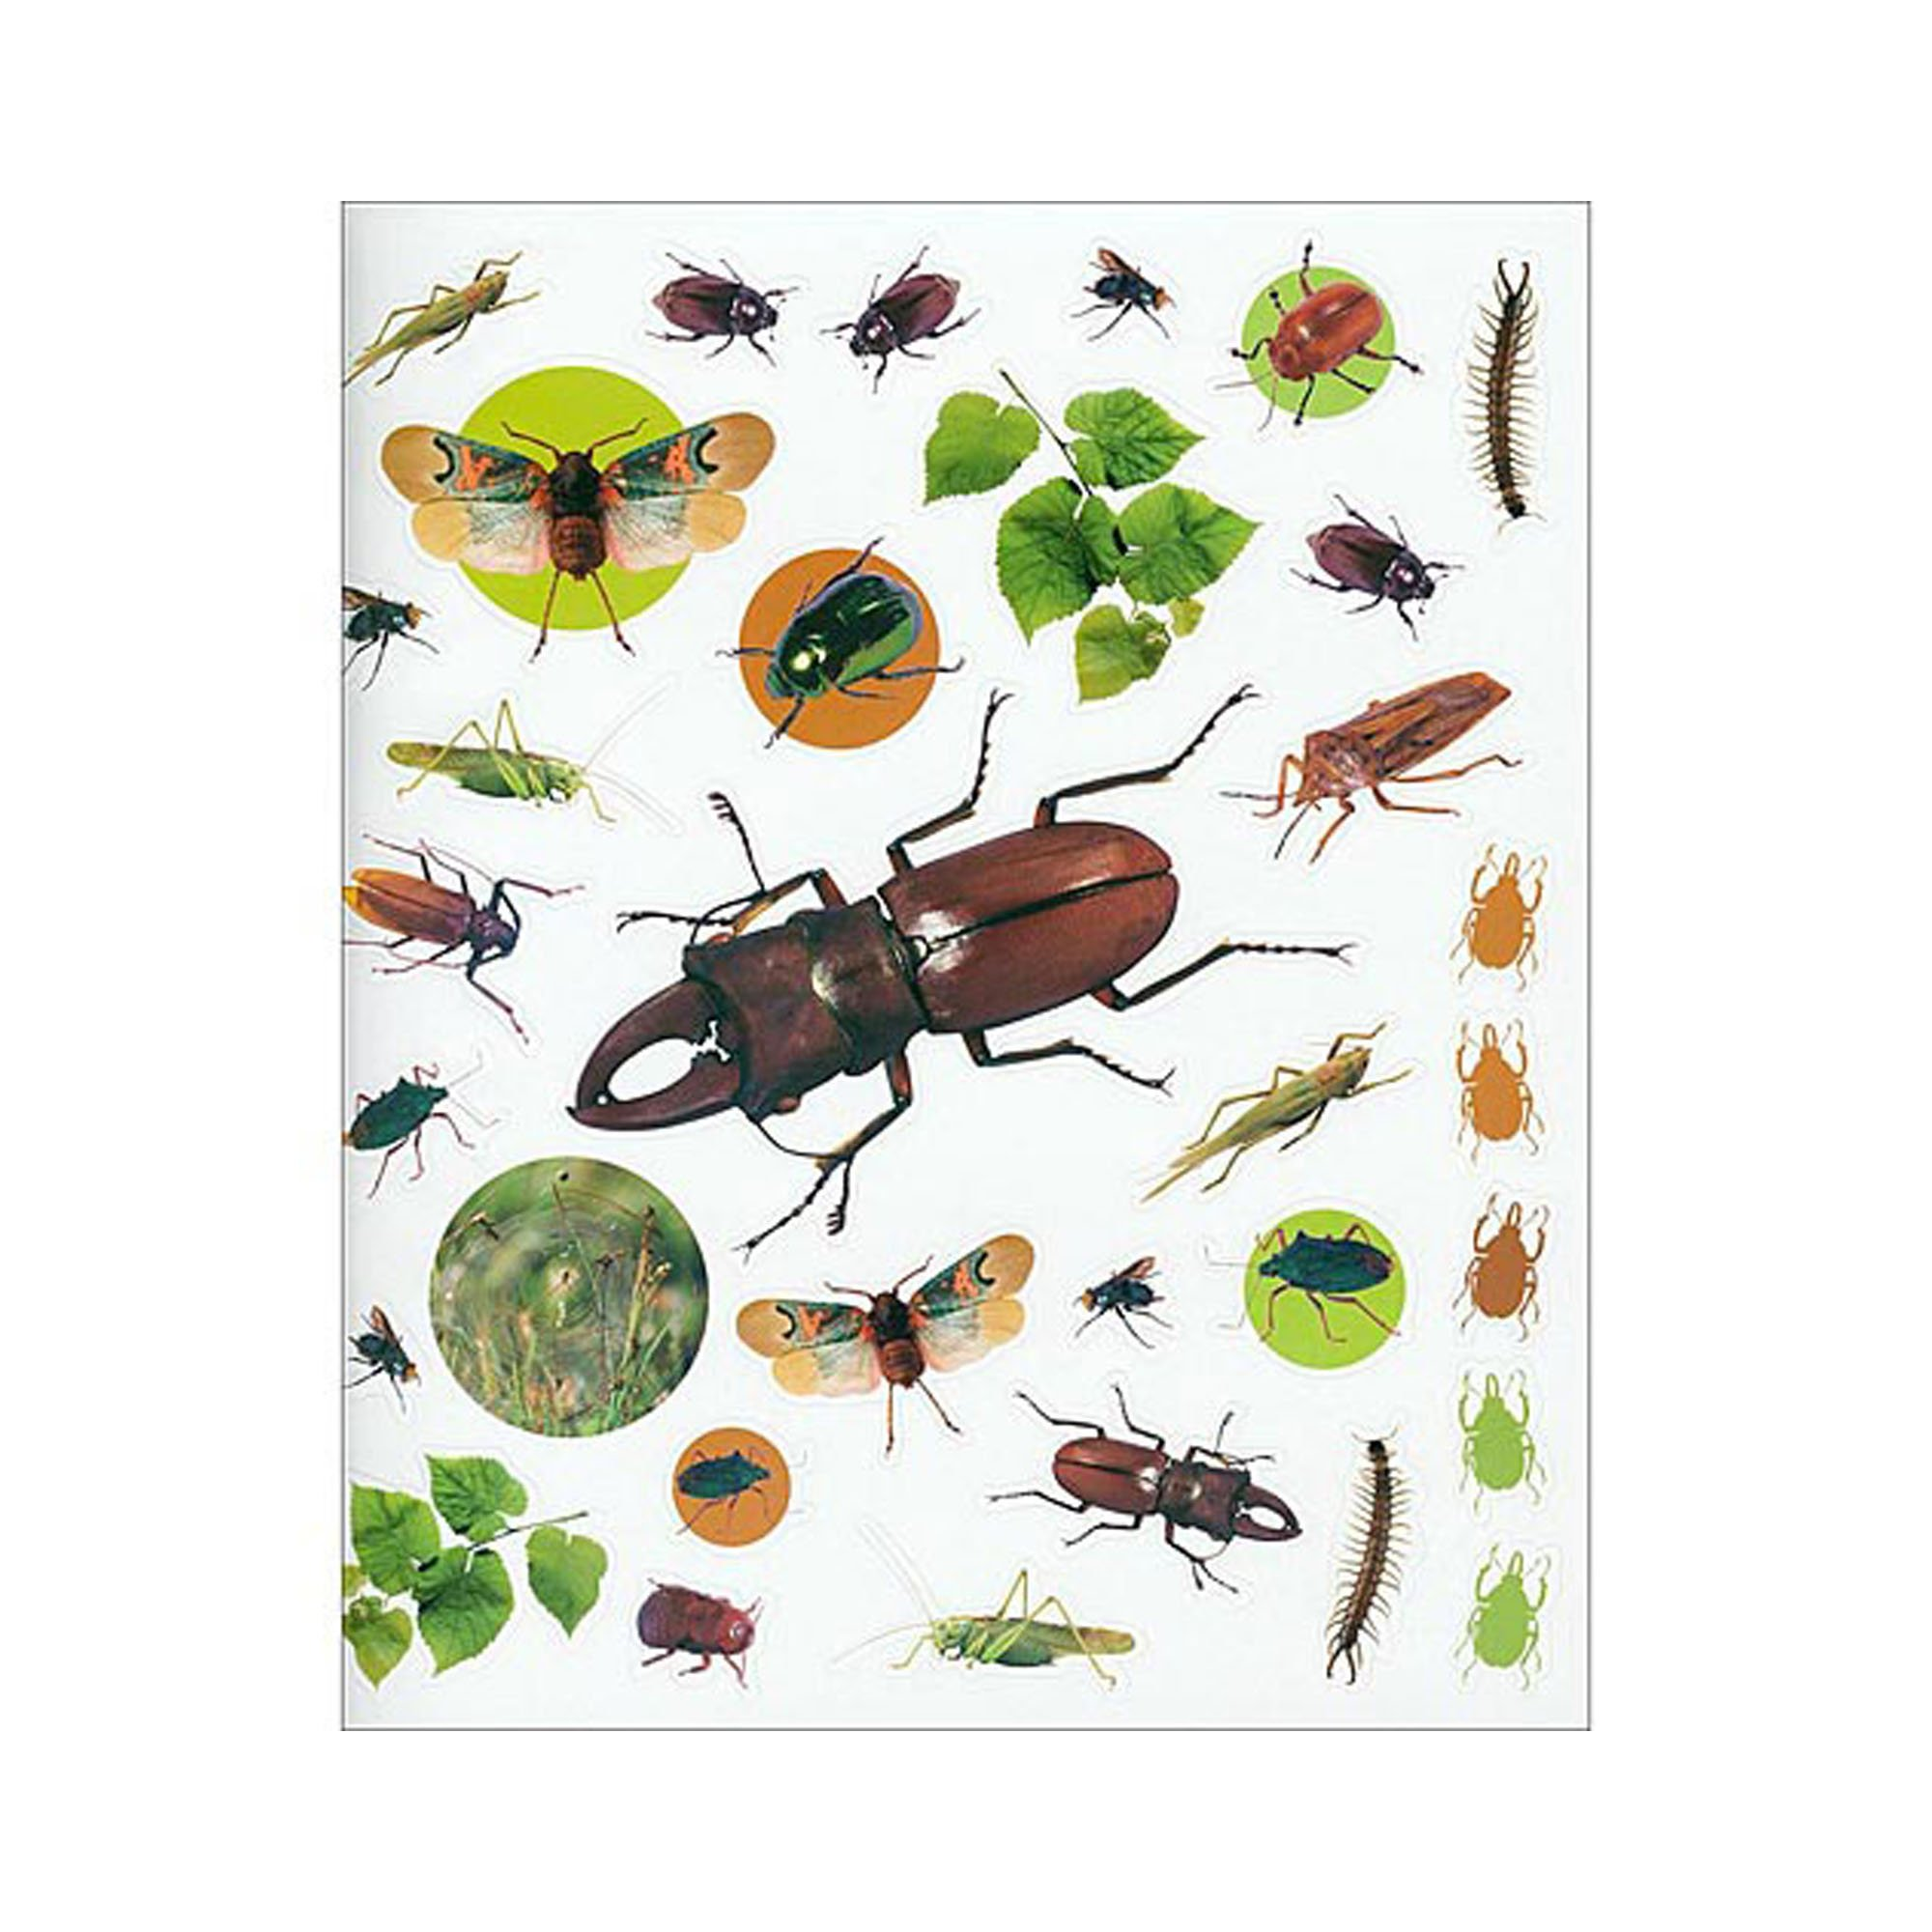 Bugs sticker book